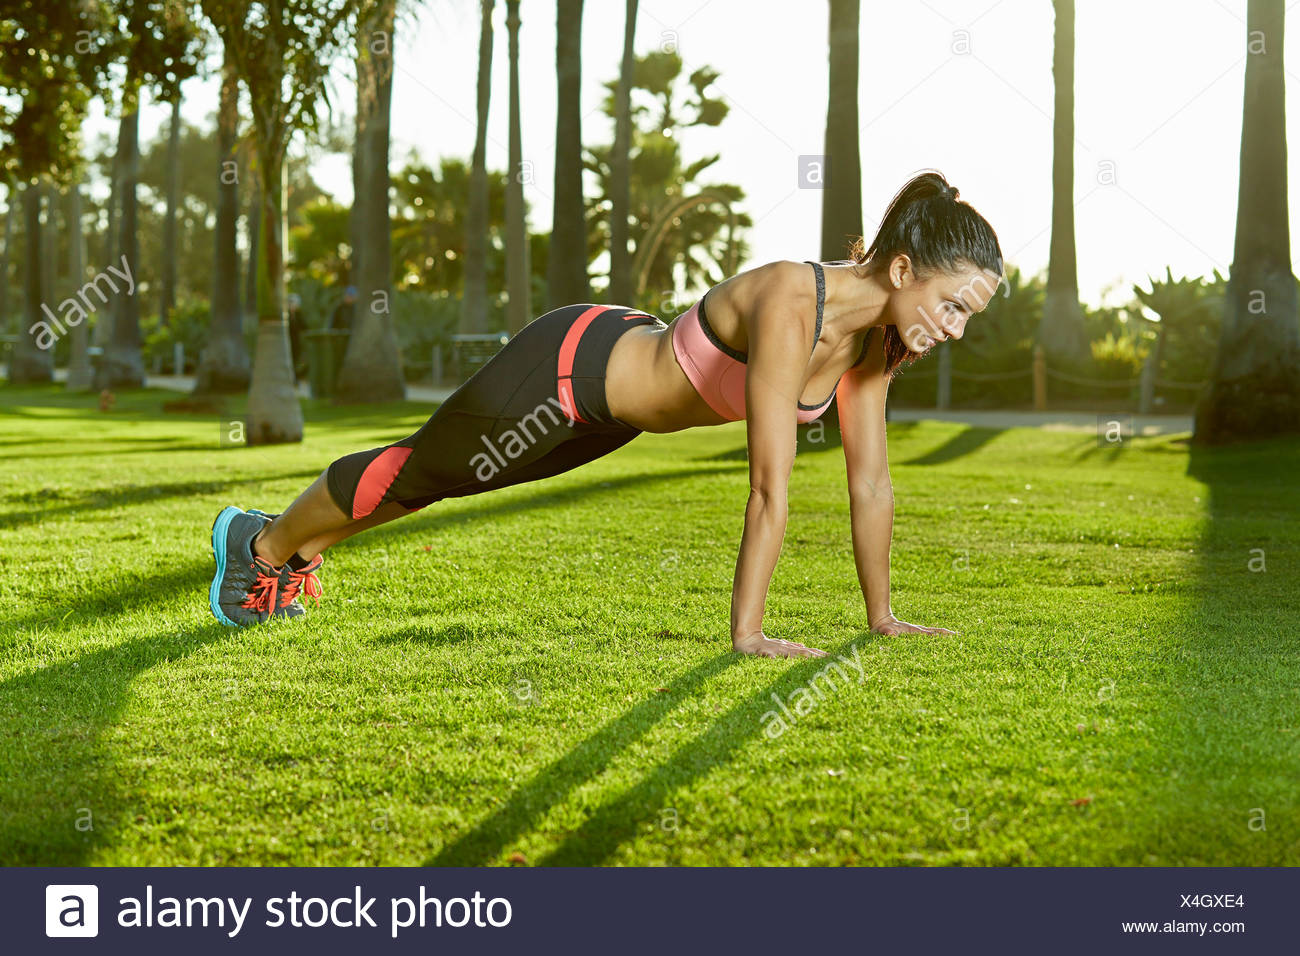 Mid adult woman doing plank exercer Photo Stock